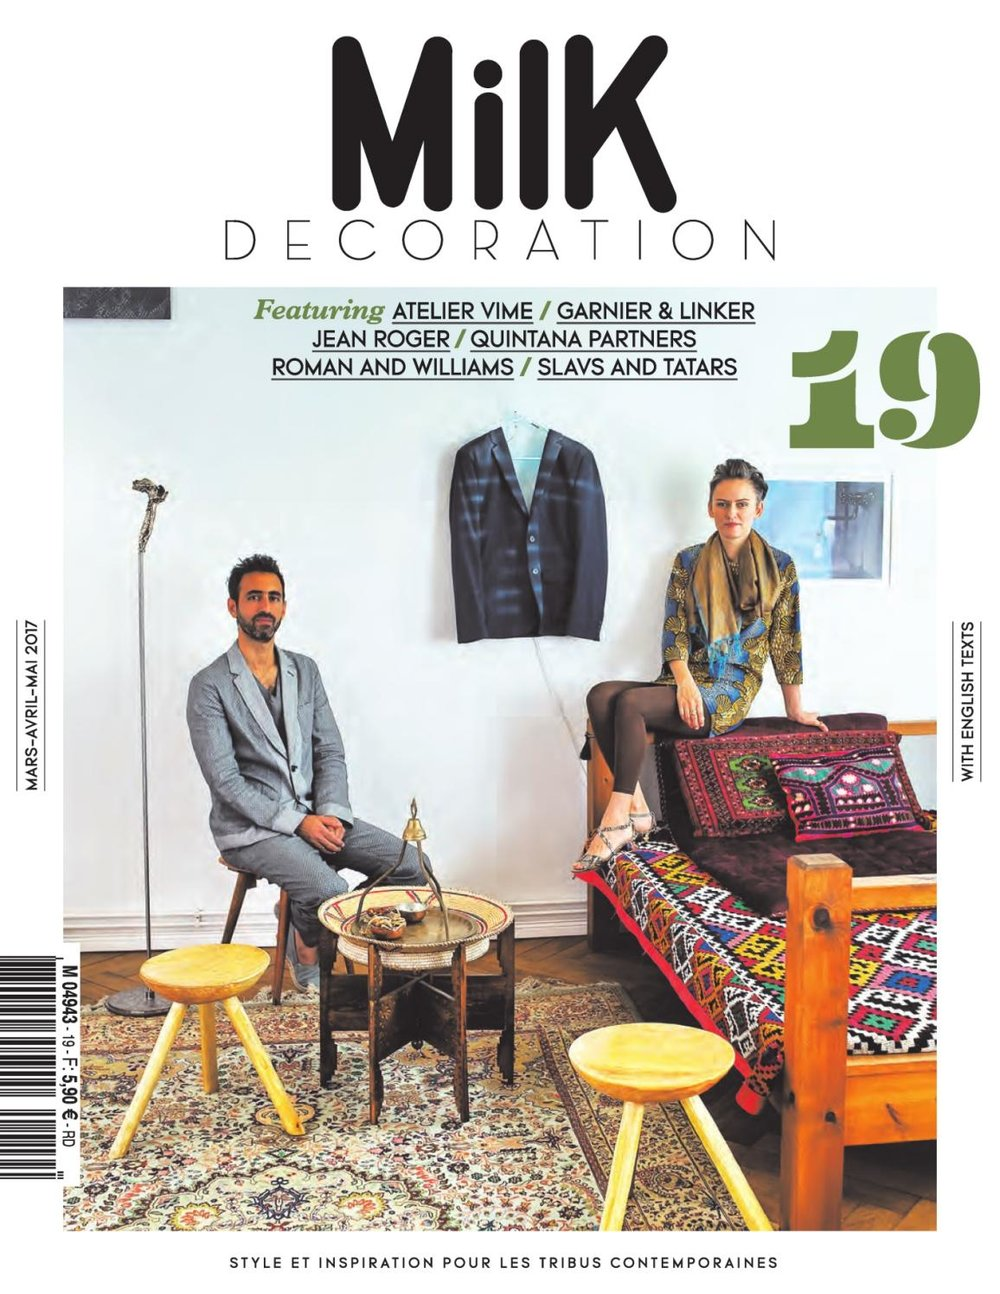 Milk Decoration cover